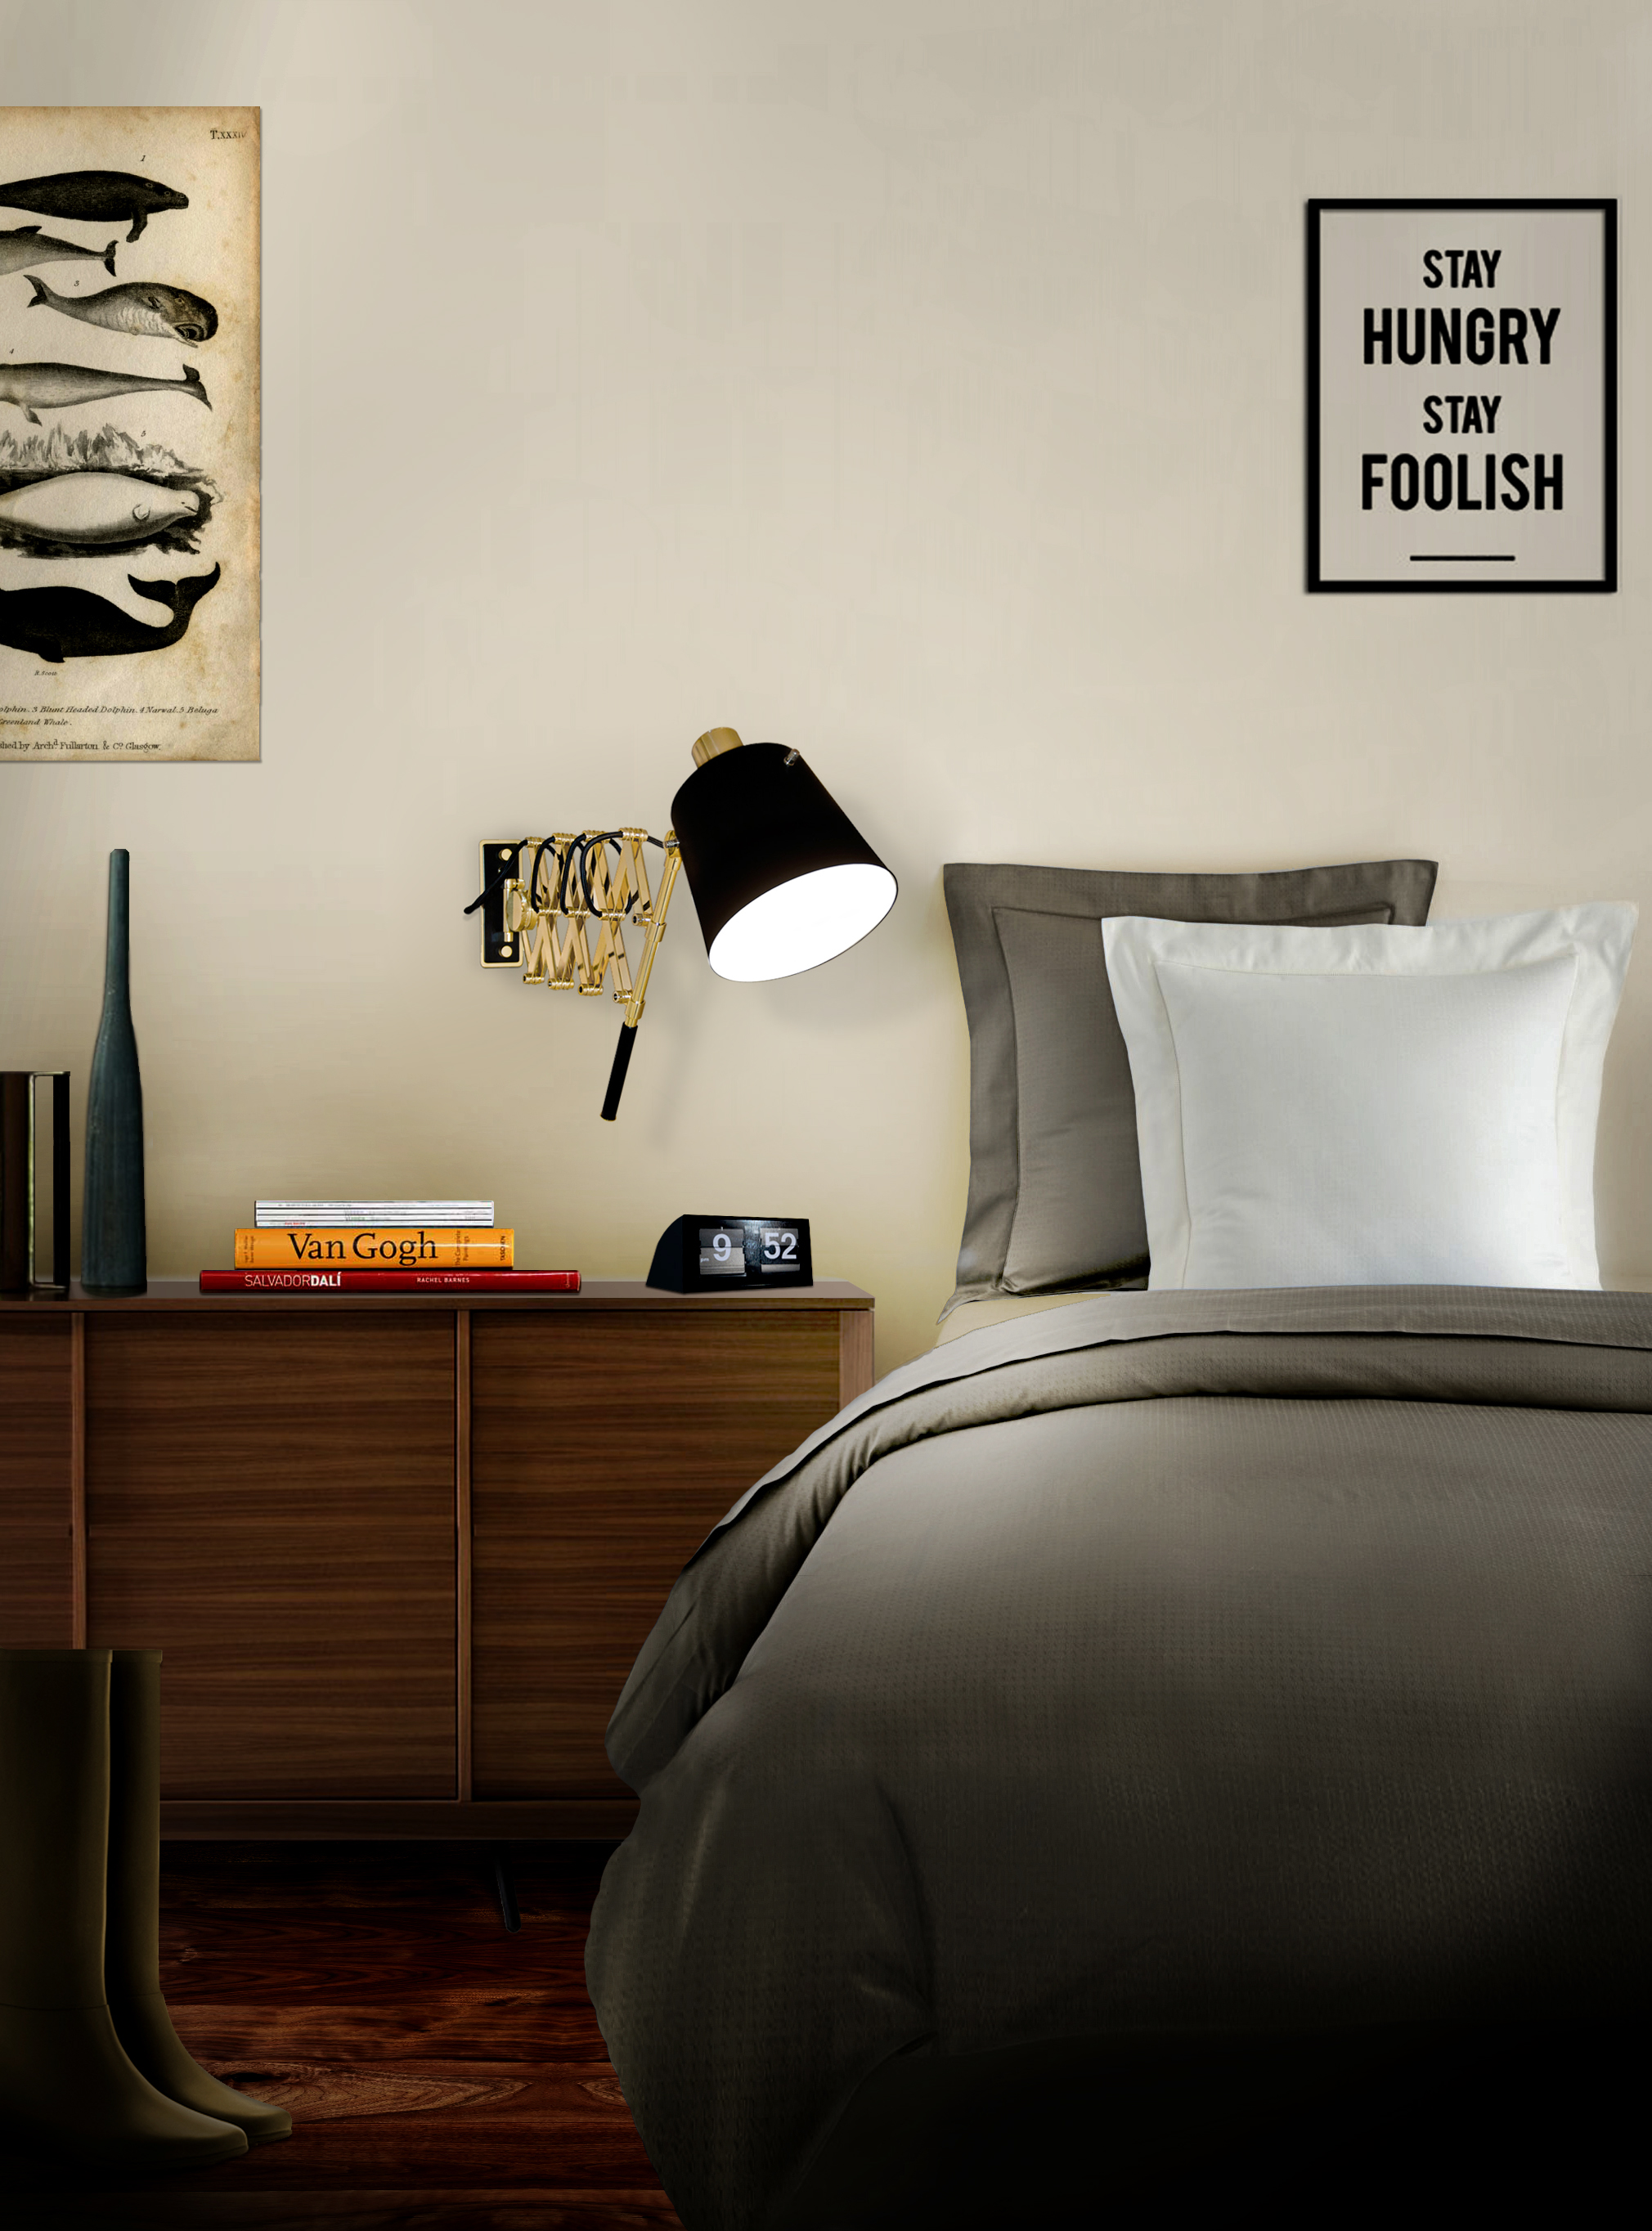 Summer Trends 8 Mid-Century Modern Lamps for Bedroom Design 1 mid-century modern lamps Summer Trends: 8 Mid-Century Modern Lamps for Bedroom Design Summer Trends 8 Mid Century Modern Lamps for Bedroom Design 4